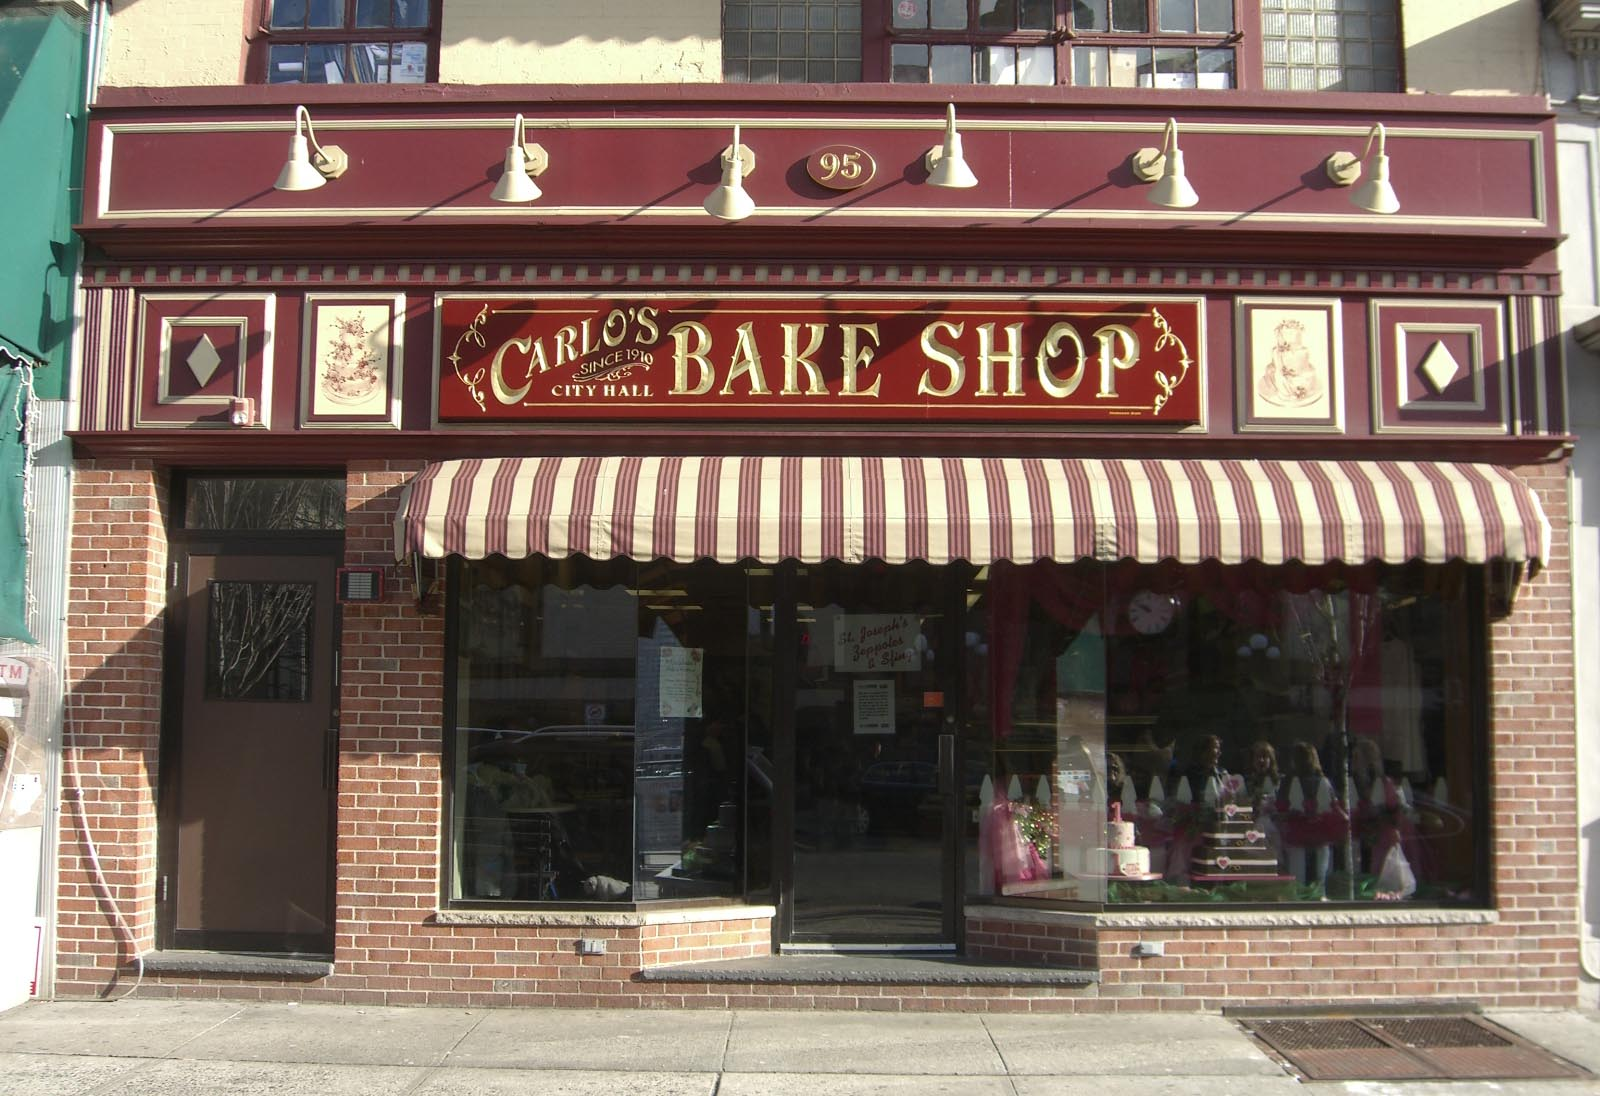 Carlo's Bake Shop - Wikipedia